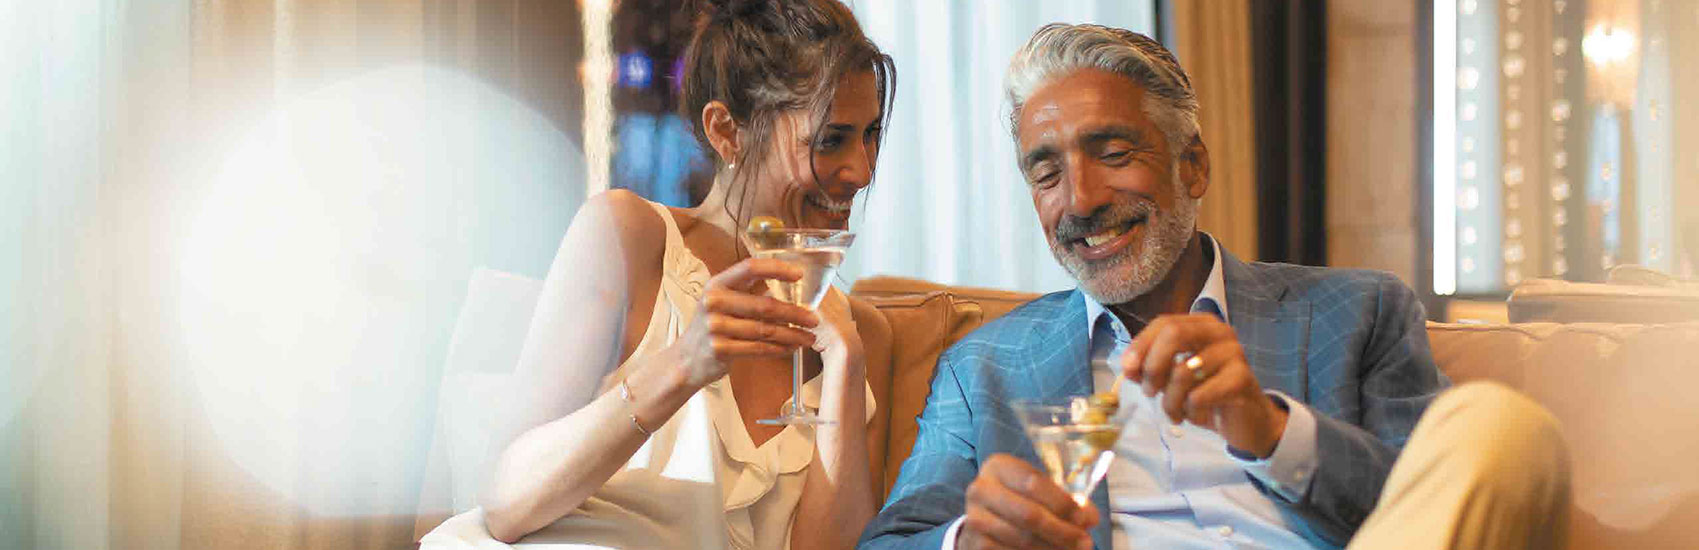 First Class In Every Way with Regent Seven Seas Cruises® 3